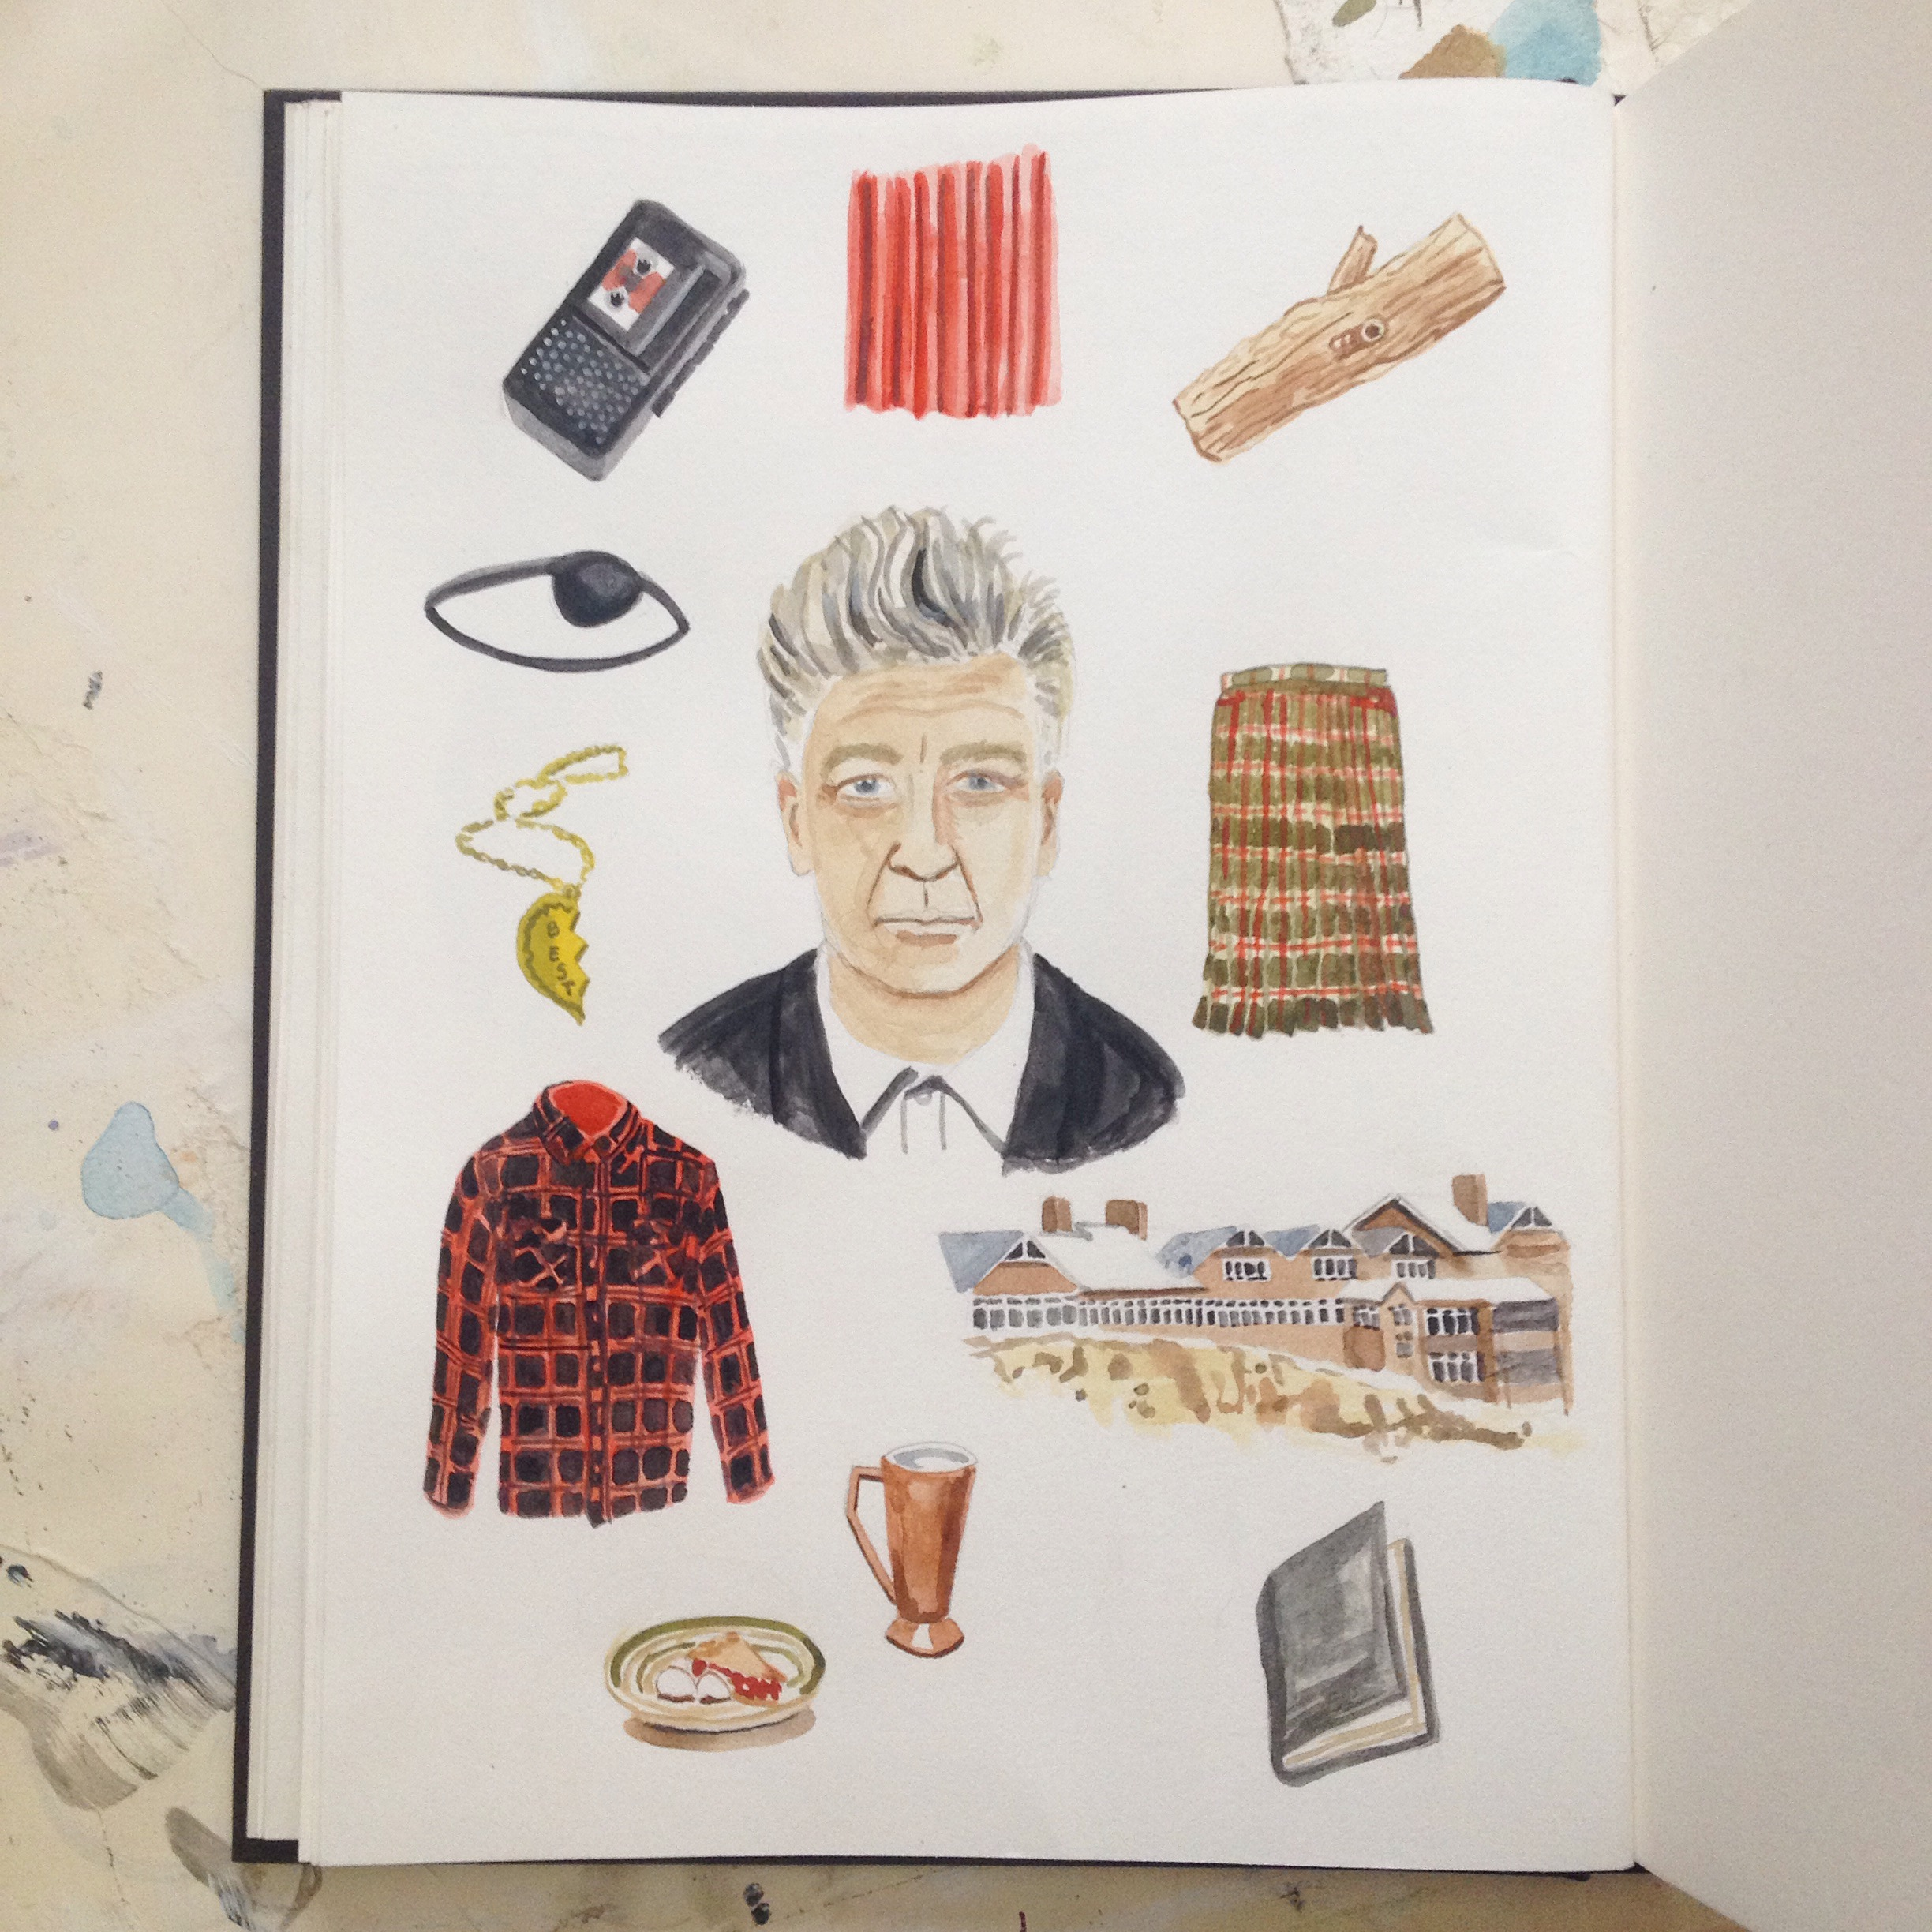 David Lynch and imagery of Twin Peaks.